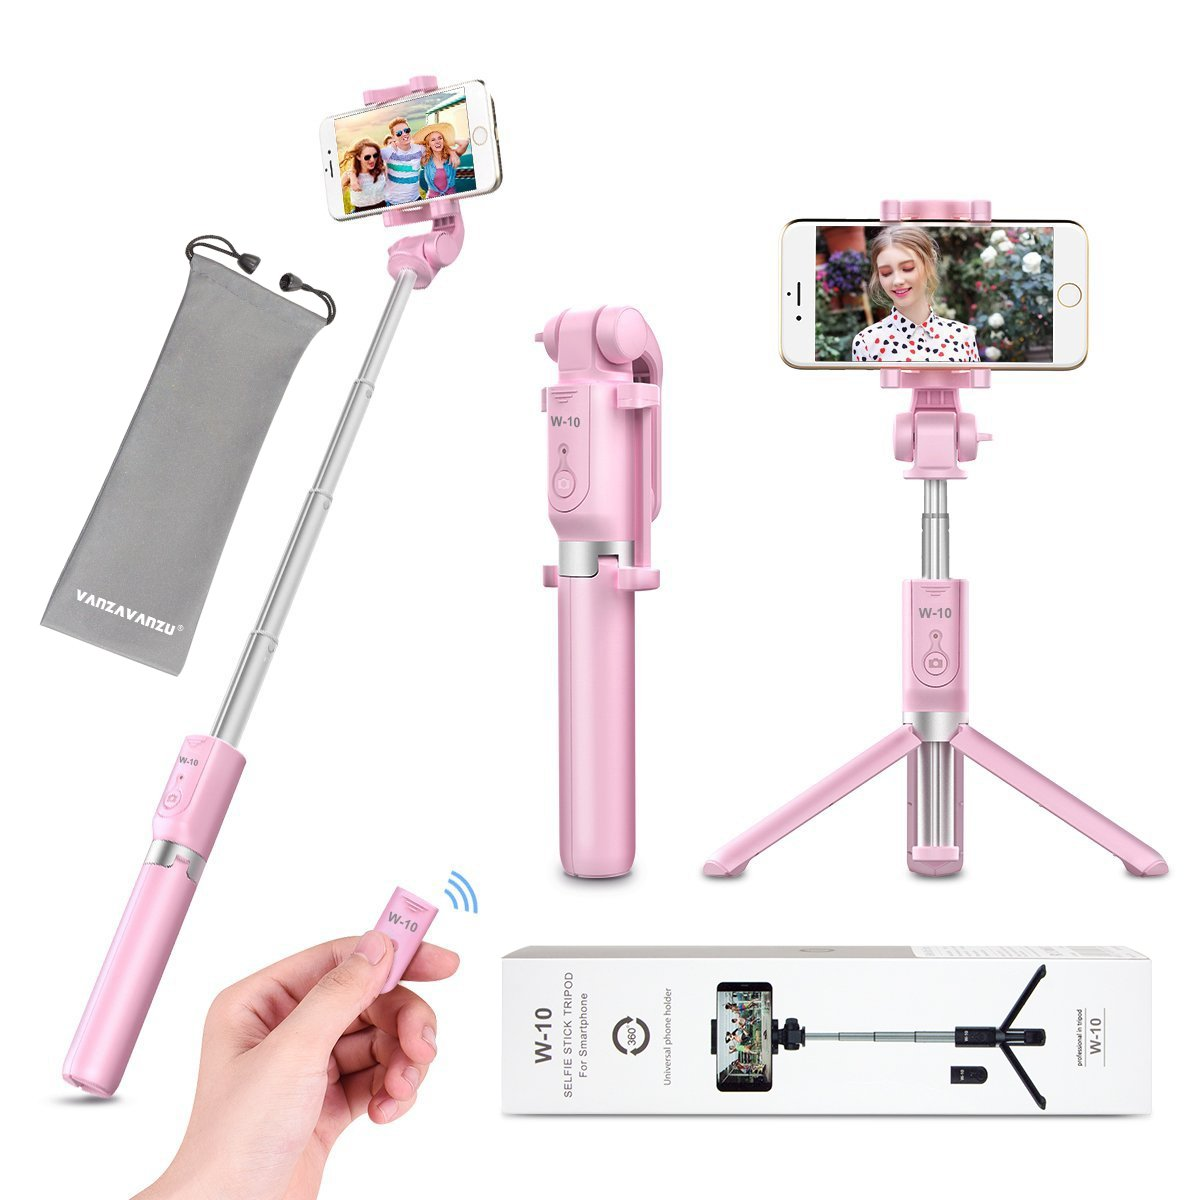 meet 555d2 0271e Selfie Stick Tripod with Remote Bluetooth - VANZAVANZU 2018 New Best Selfie  Stick Monopod Tripod for iPhone X 8 6 6s 7 Plus Samsung s7 Edge, Podcast,  ...